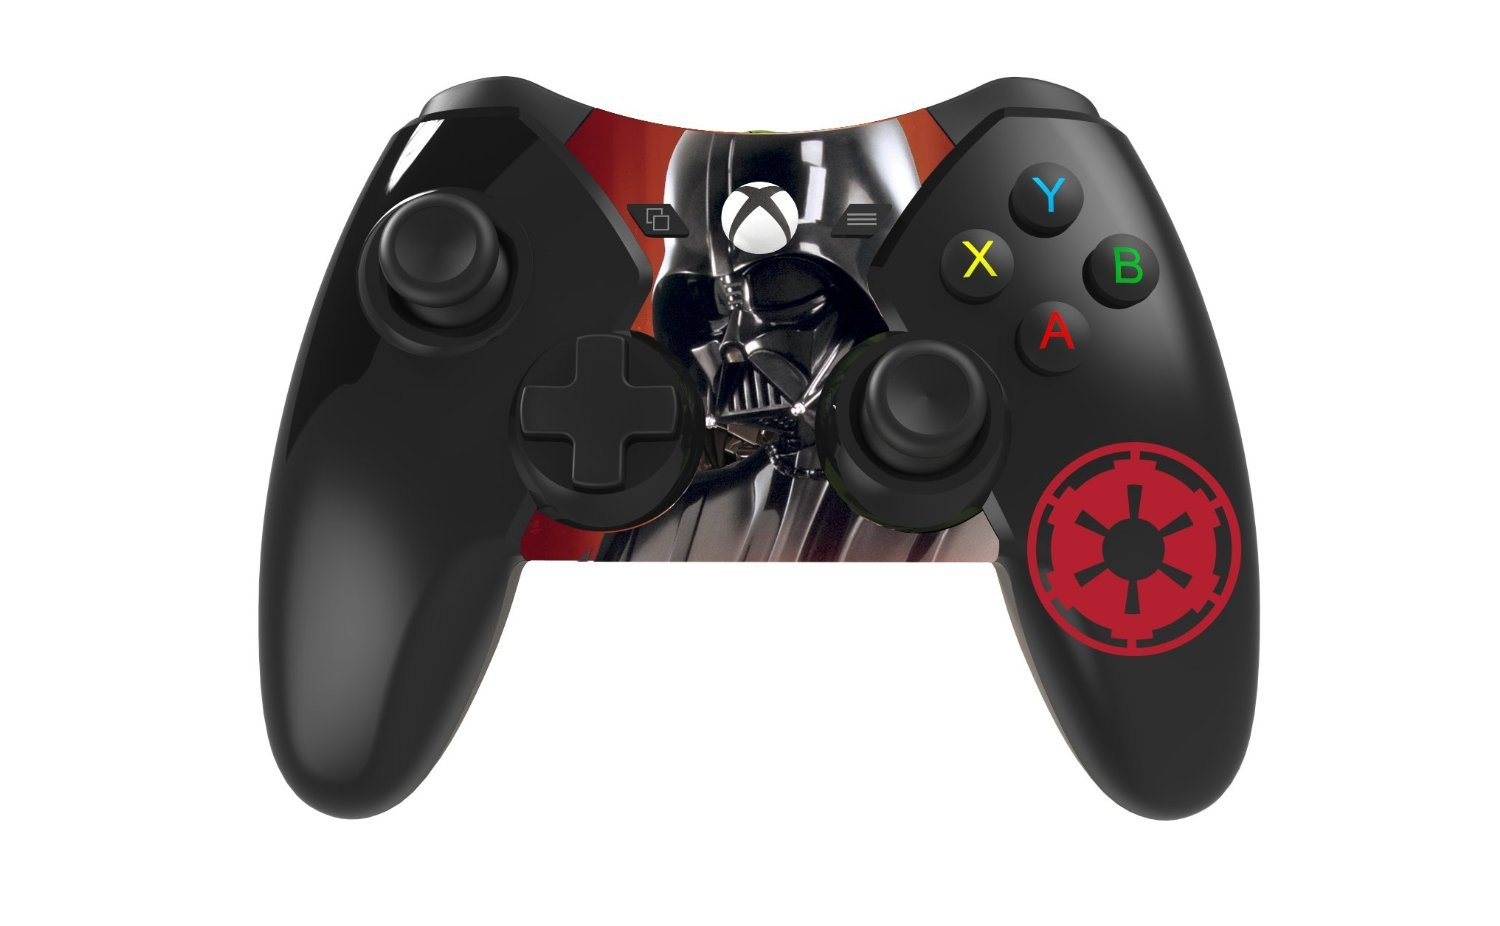 Xbox One Official Licensed Controller - Star Wars Darth Vader for Xbox One image